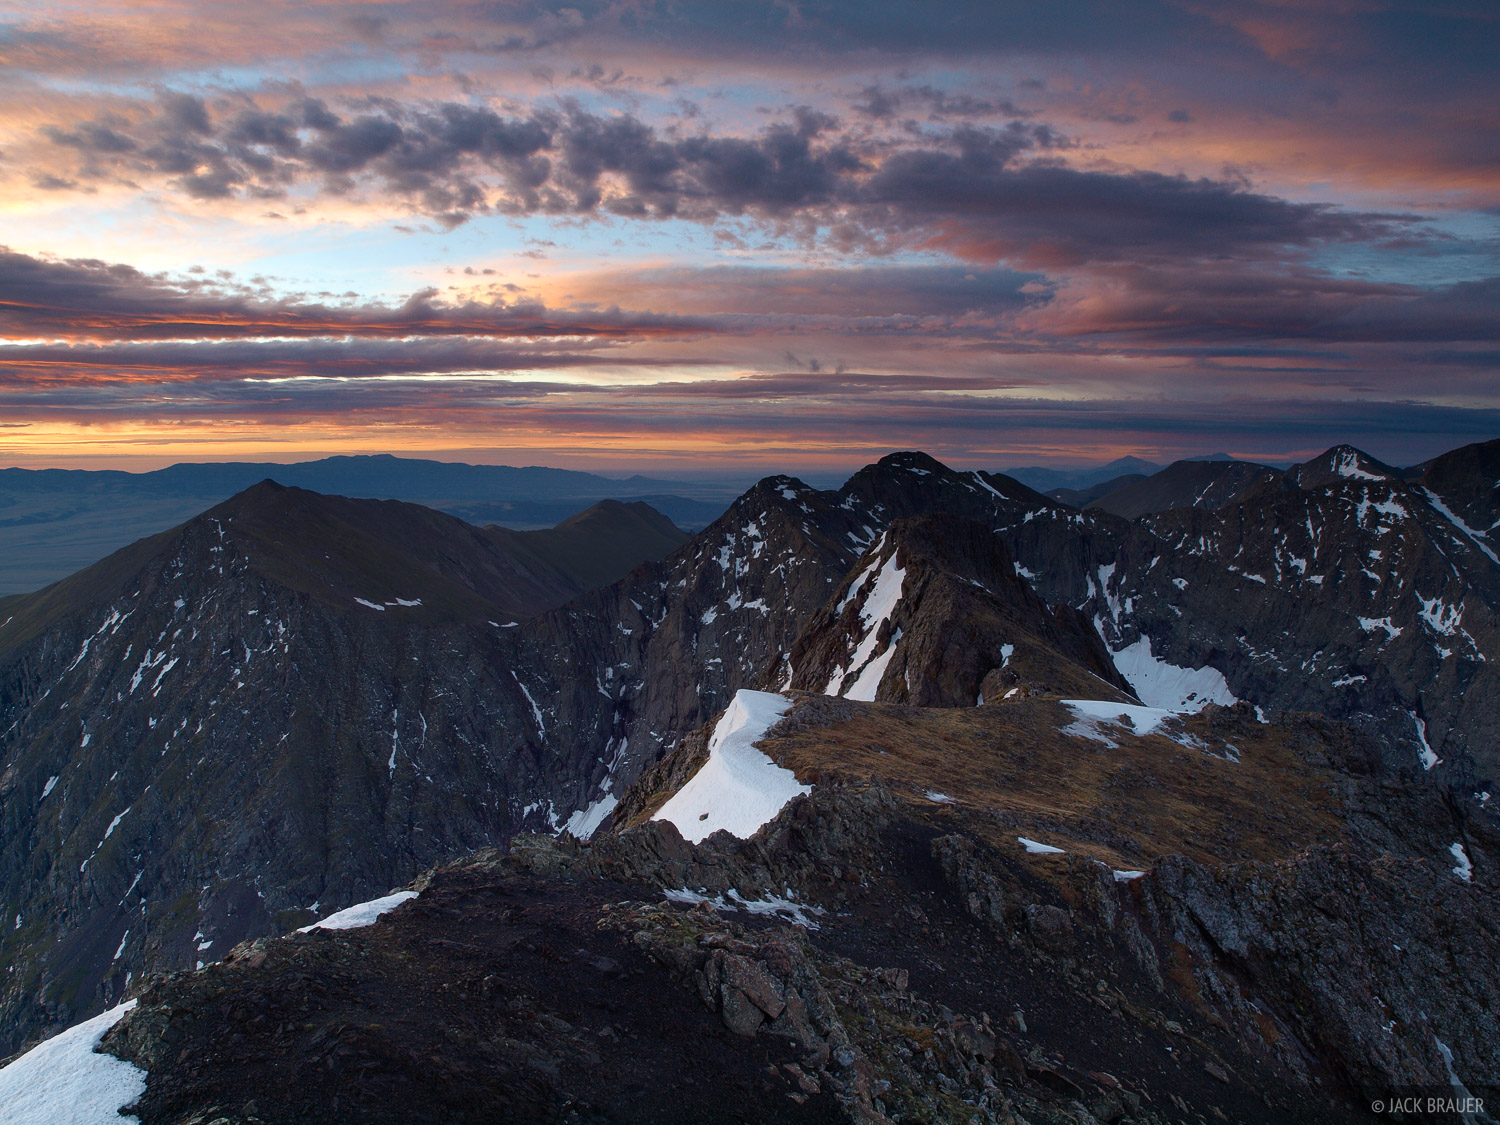 Broken Hand Peak, sunrise, Sangre de Cristos, Colorado, Sangre de Cristo Wilderness, photo